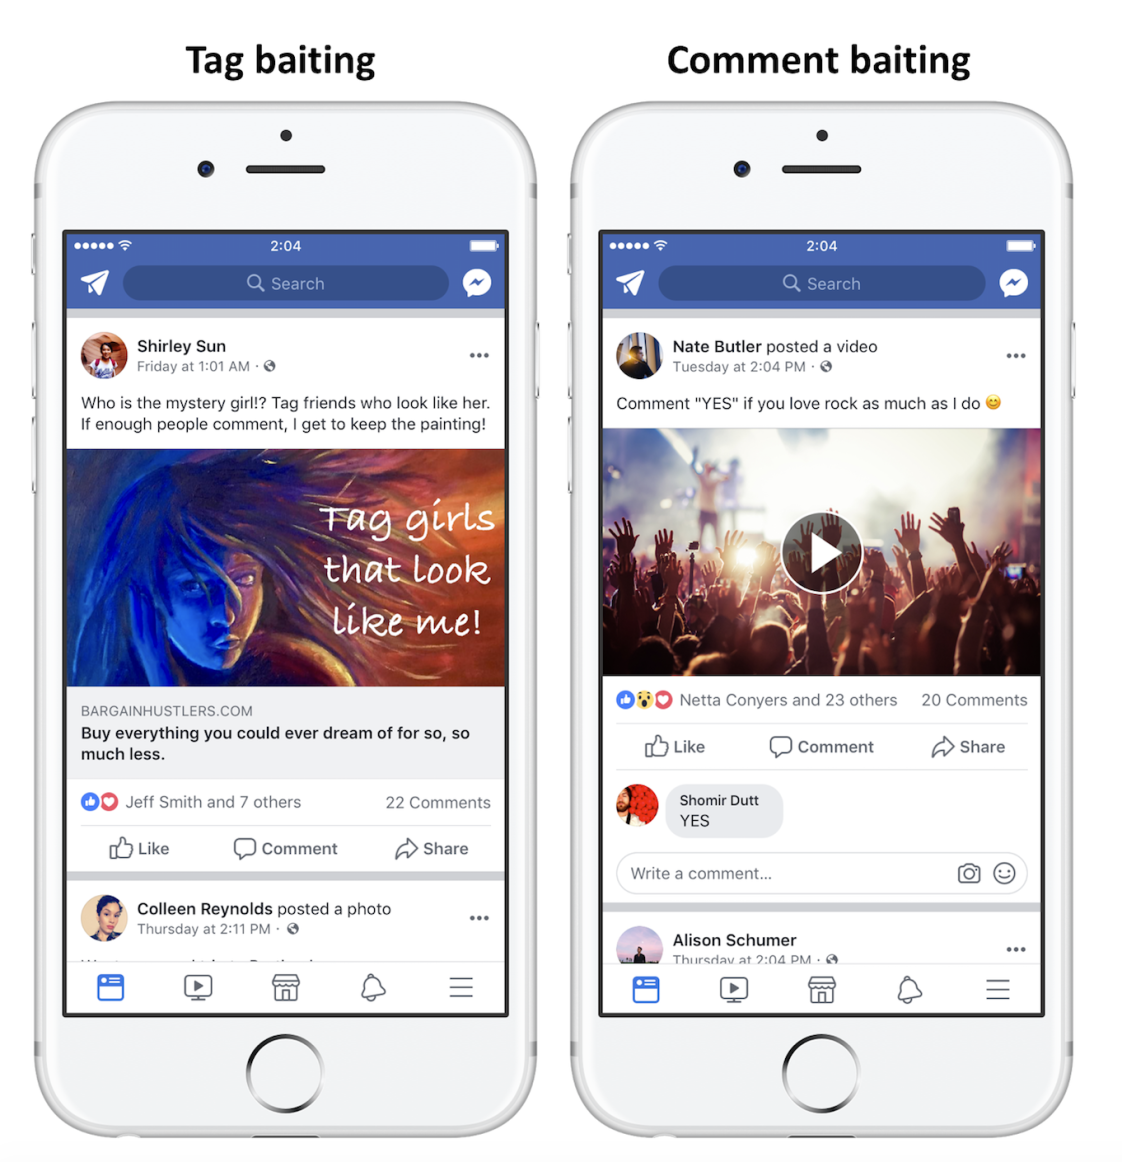 Image of Engagement Bait on Facebook